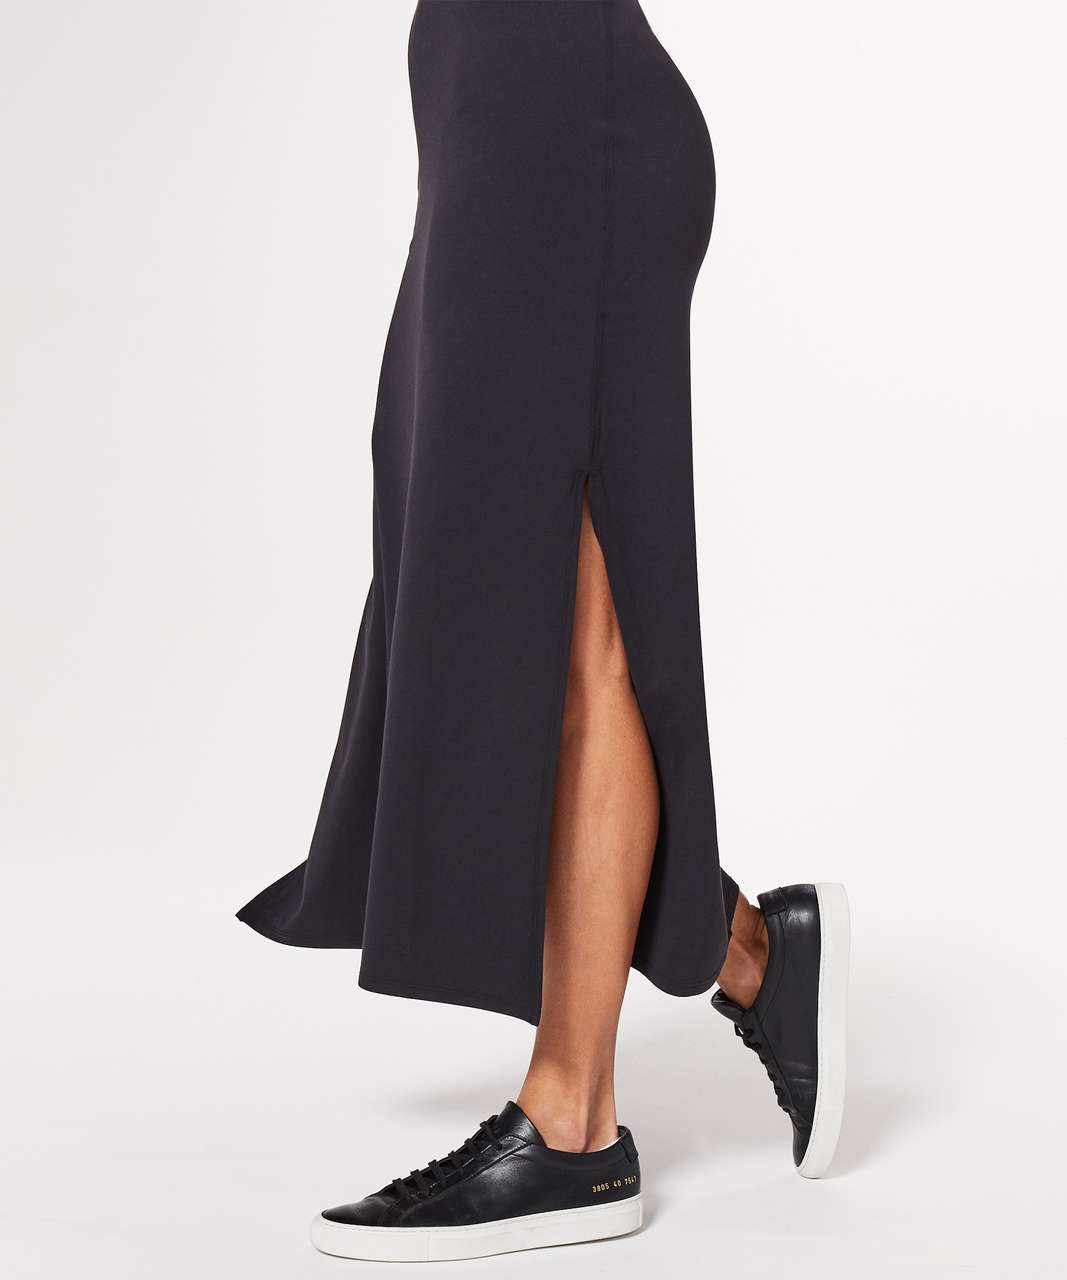 Lululemon Get Going Dress - Black (First Release)